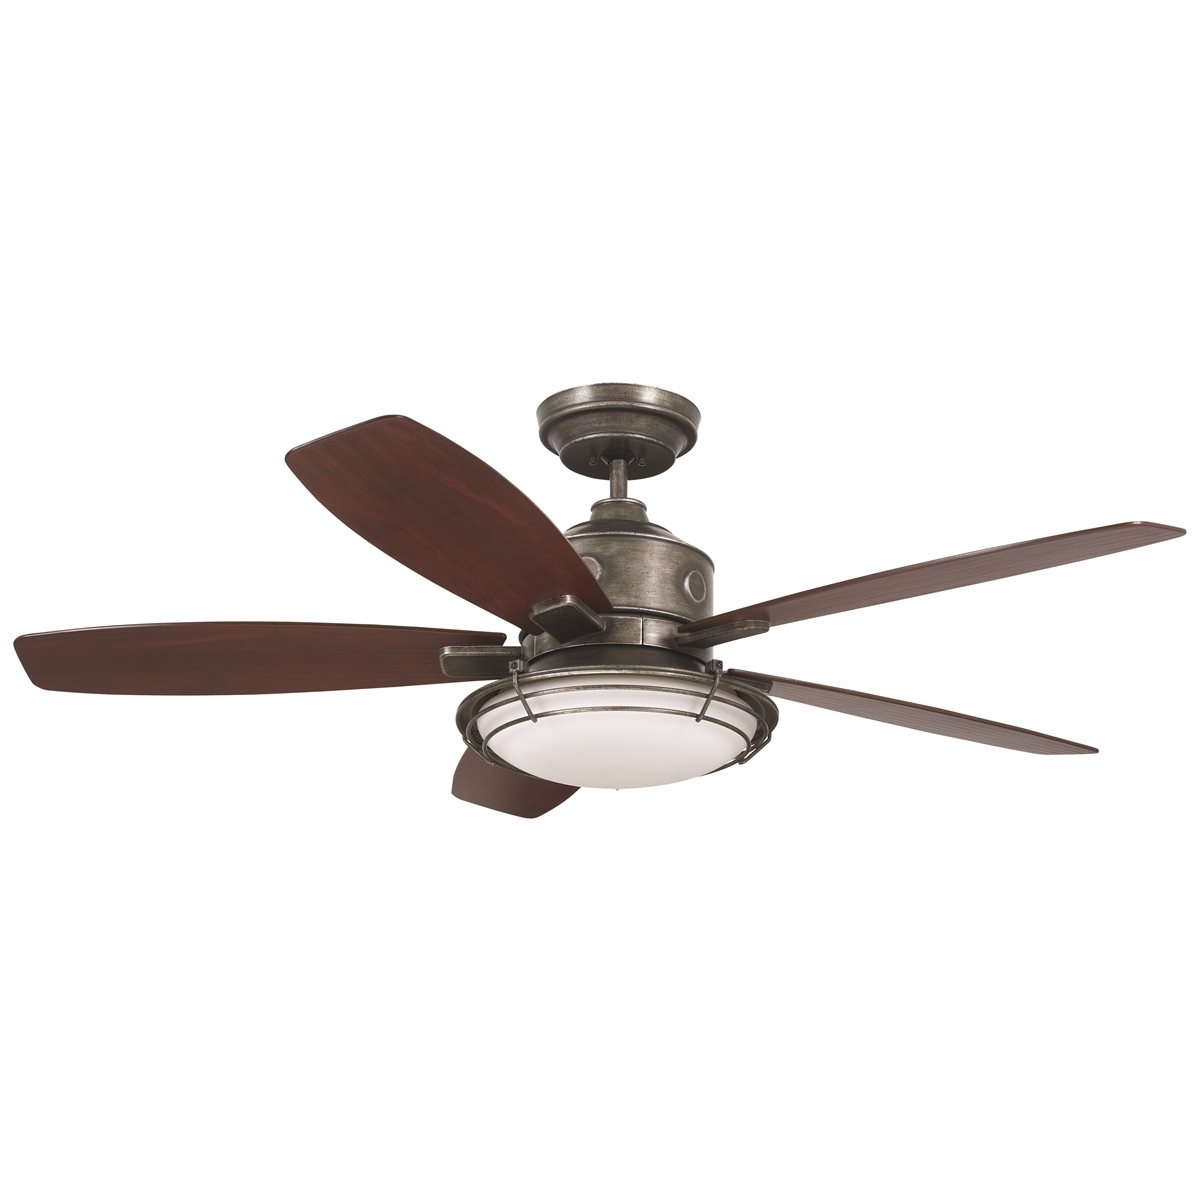 Emerson Outdoor Ceiling Fans With Lights Regarding Preferred Emerson Rockpointe Outdoor Ceiling Fan – Vintage Steel One Each (View 19 of 20)